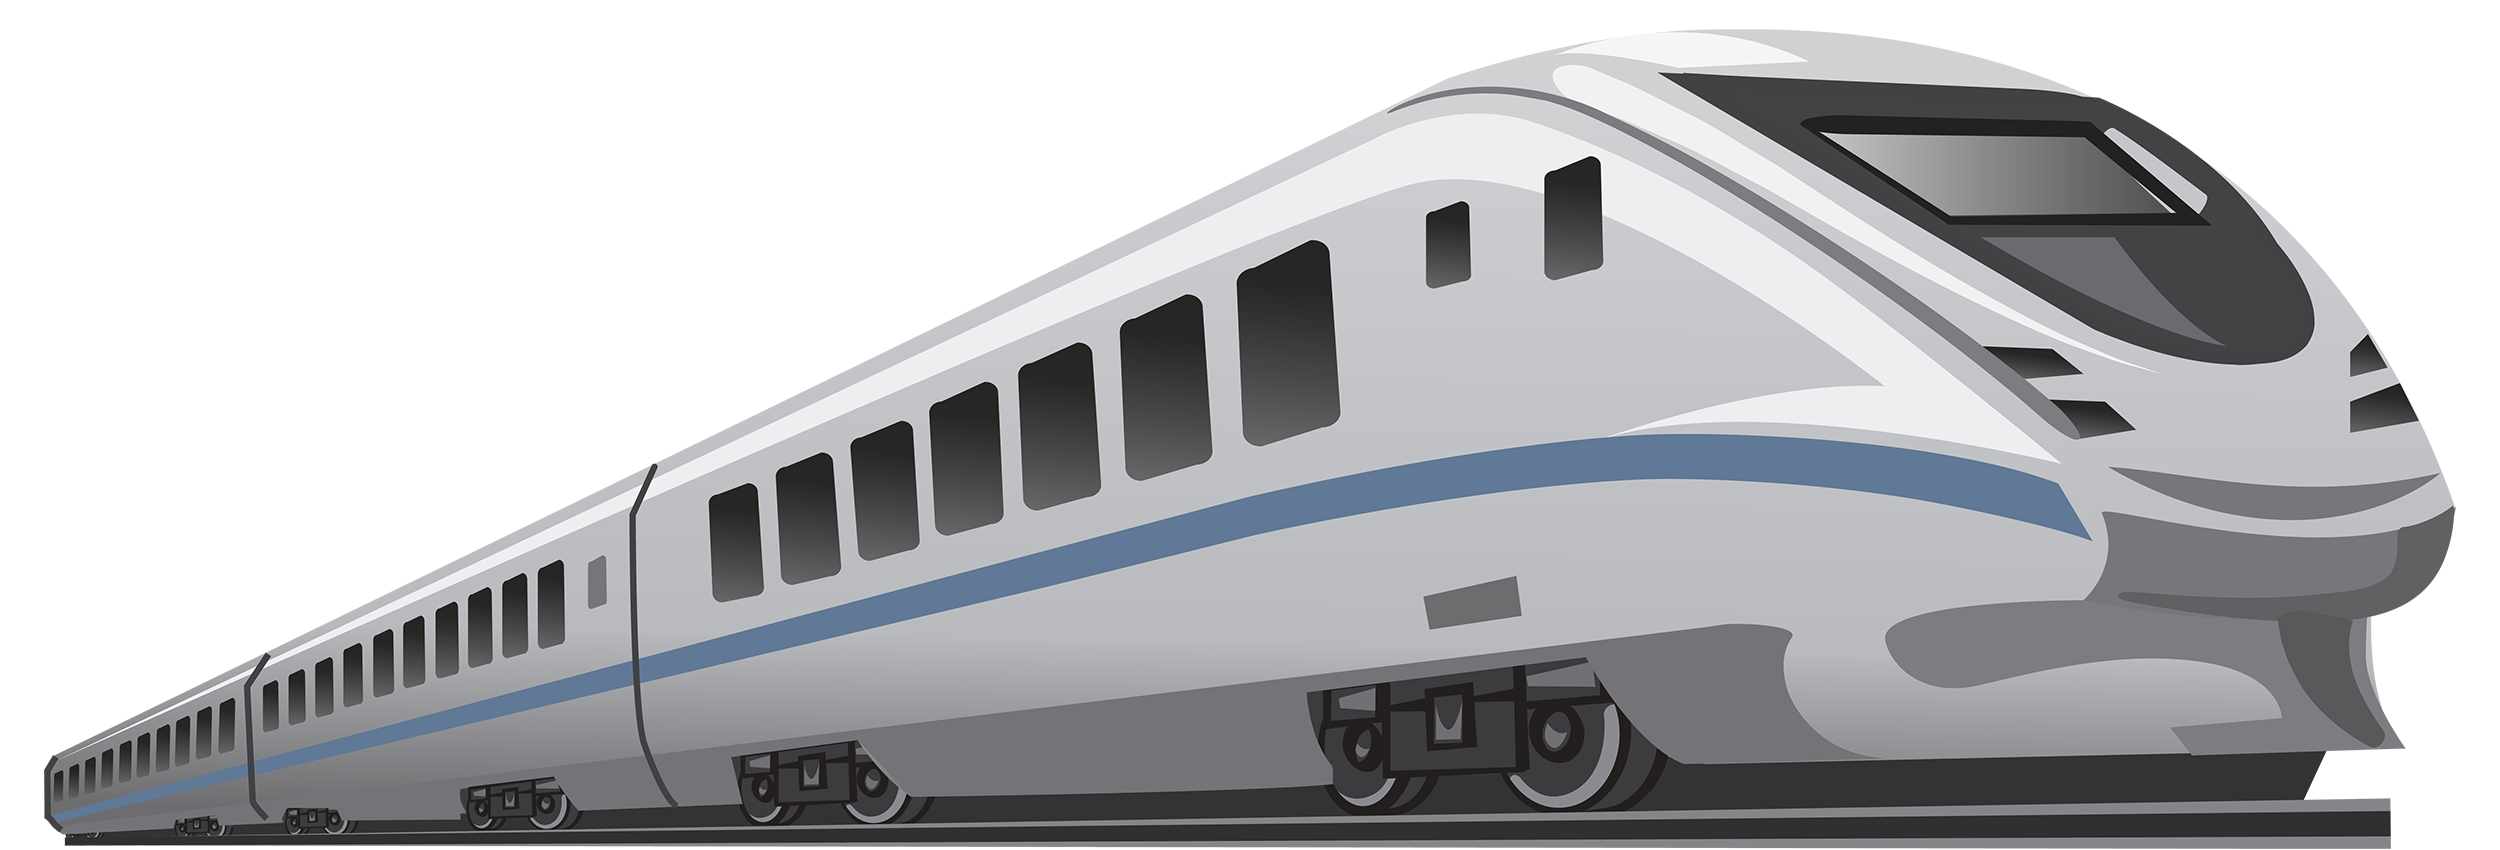 Modern train clipart vector black and white download Modern Train PNG Clipart - Best WEB Clipart vector black and white download